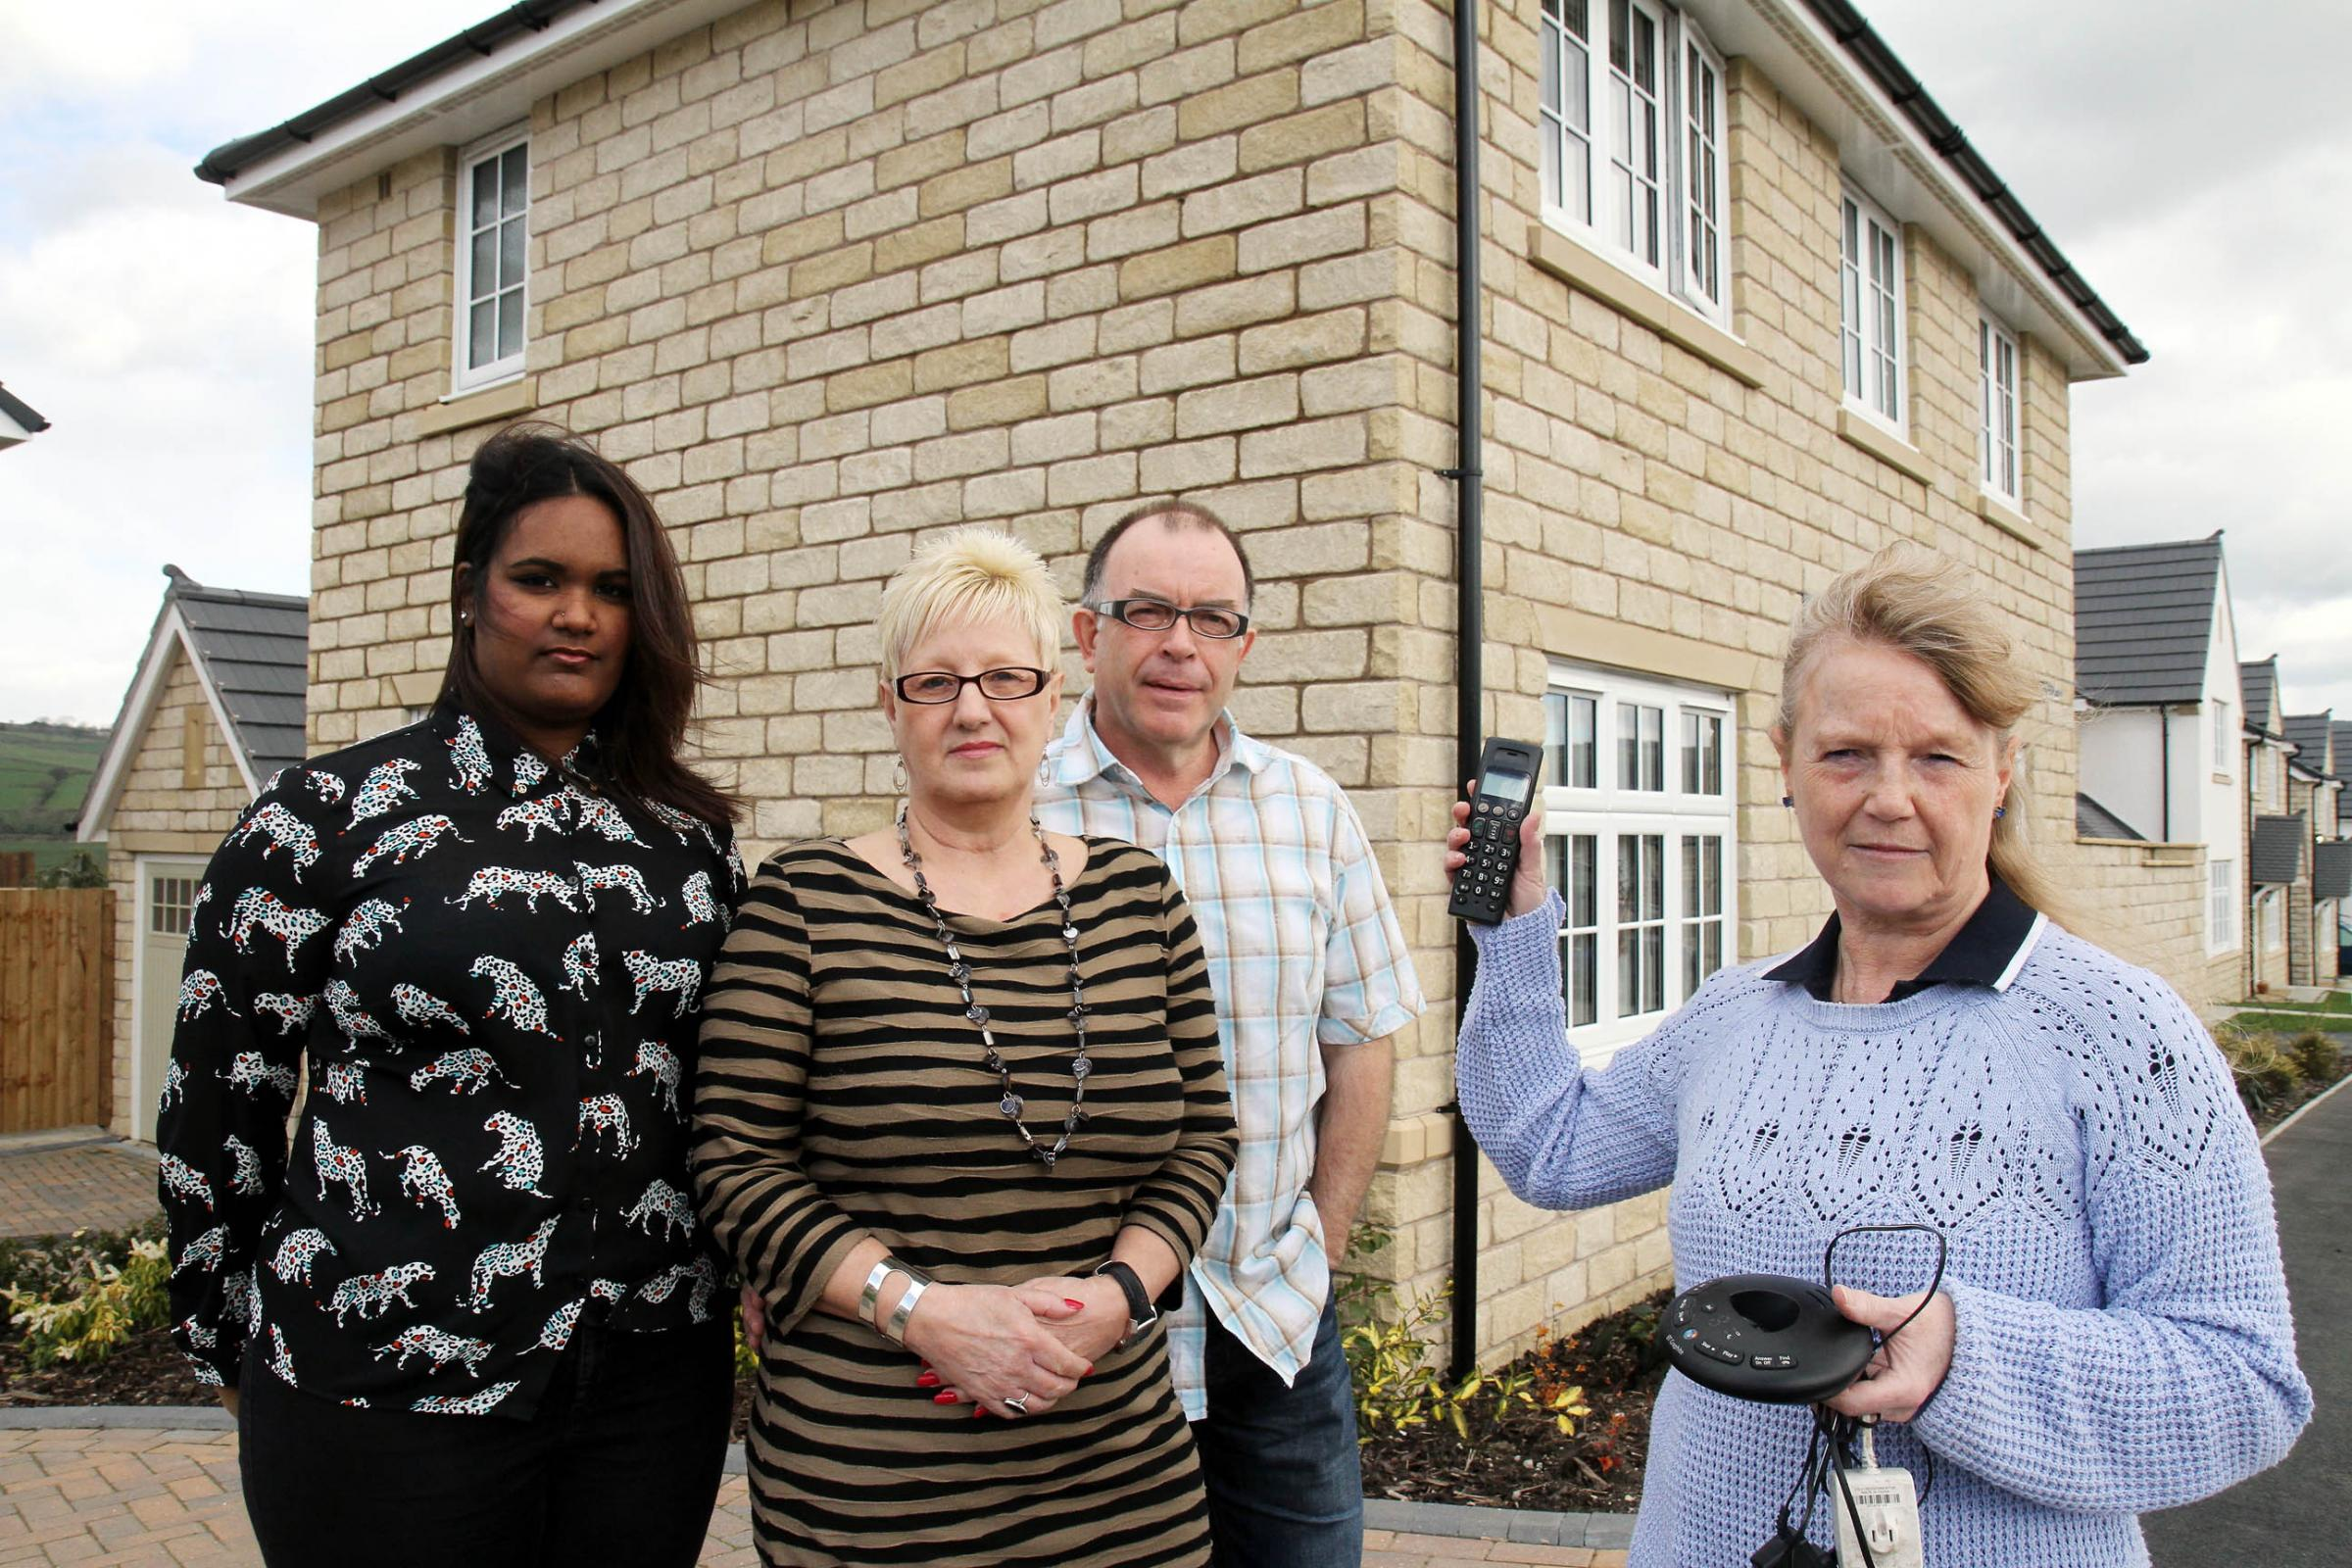 Residents of Meadow Drive in Steeton, from left, Devika Mohammed, Diane Hall, David Hall and Vayle Sherriffs, who have been left without a phone service